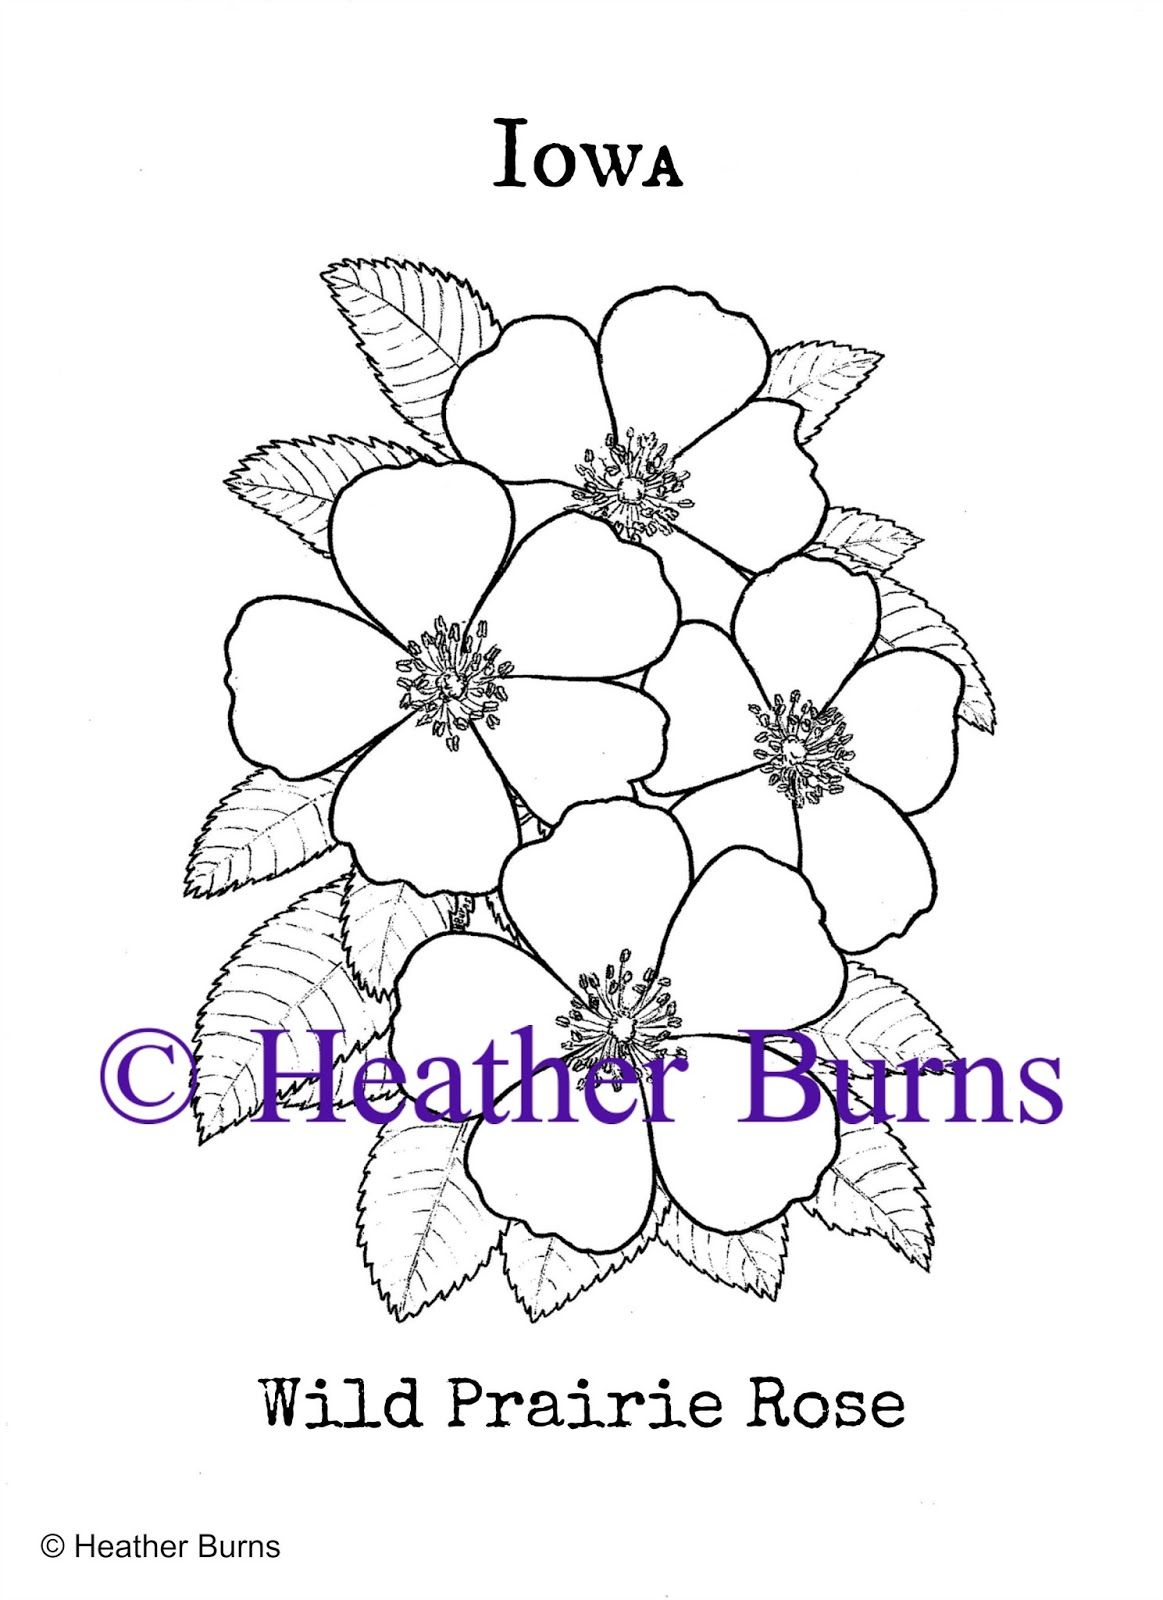 Iowa State Flower Wild Prairie Rose Rose Coloring Pages